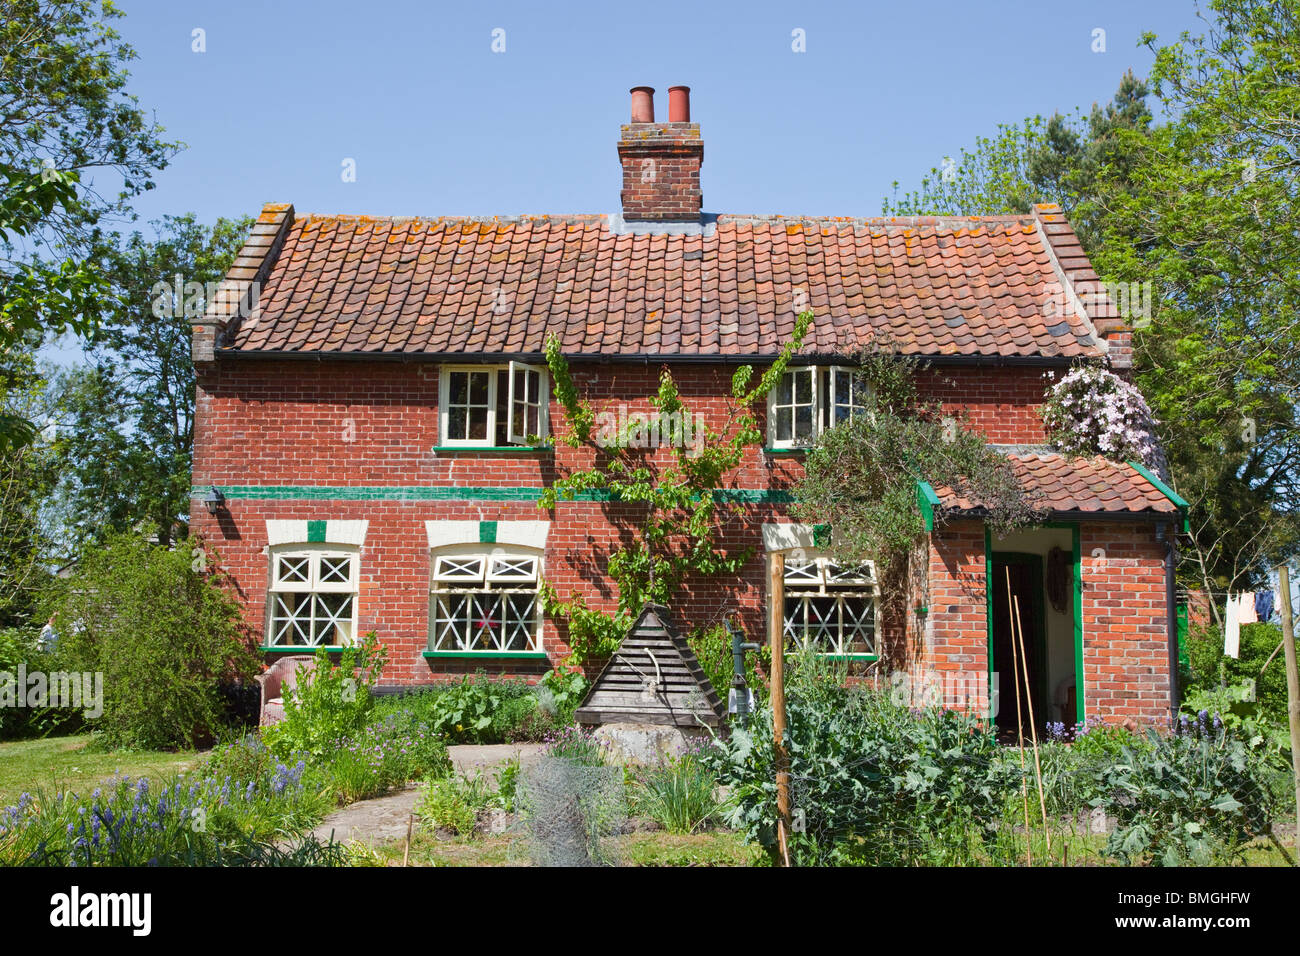 English Kitchen Garden Kitchen Garden At English Country House Stock Photo Royalty Free